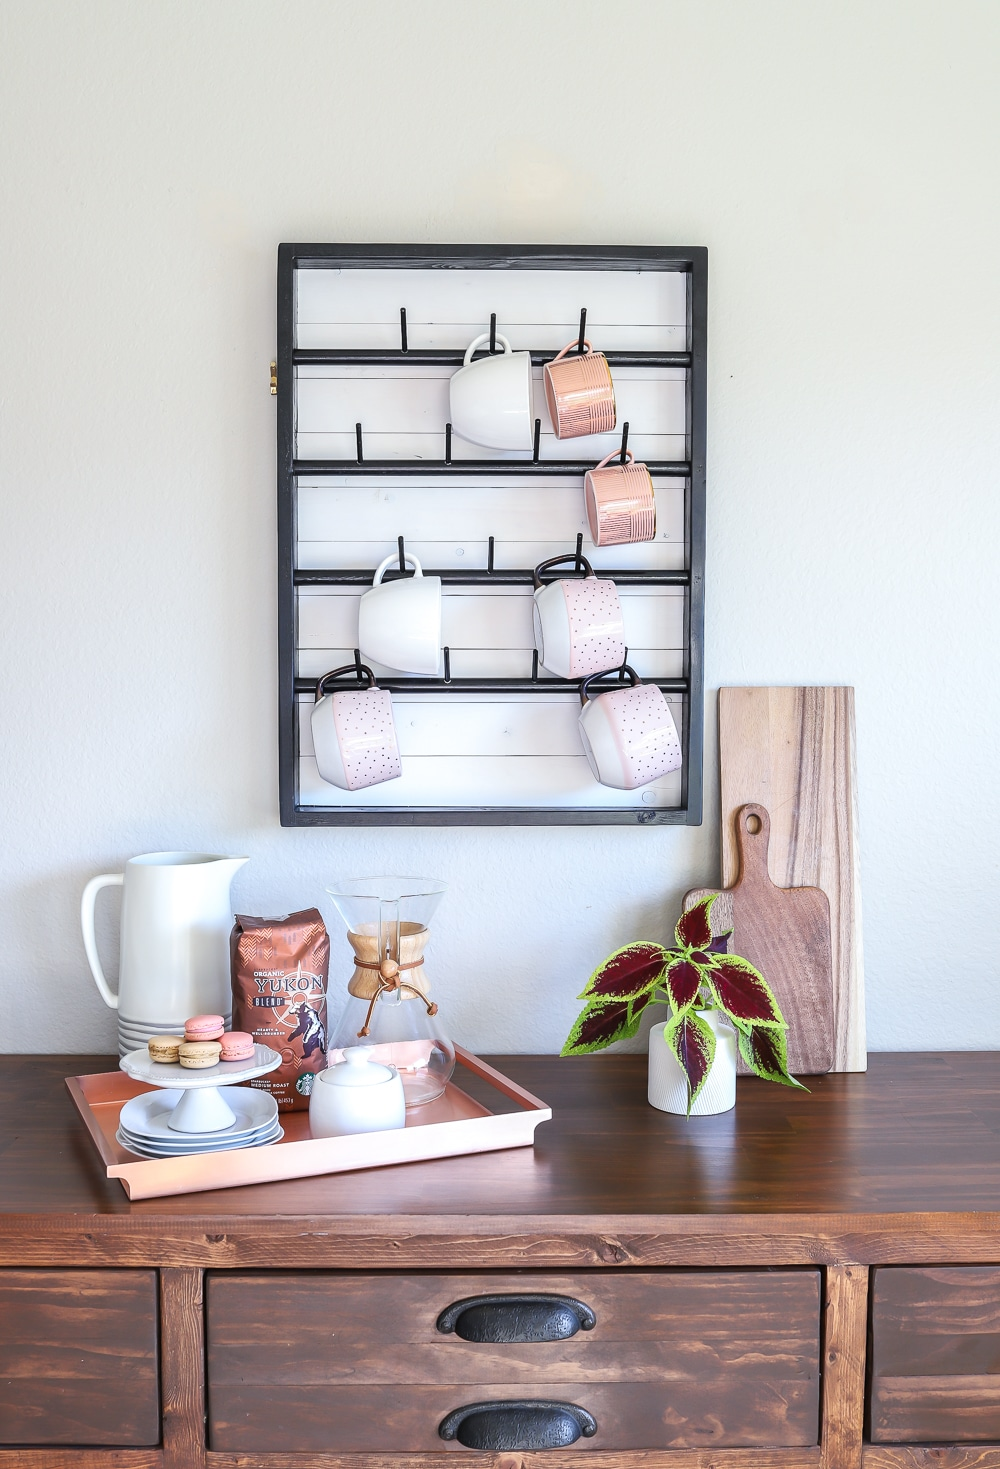 How to make a wall-mounted DIY coffee mug rack